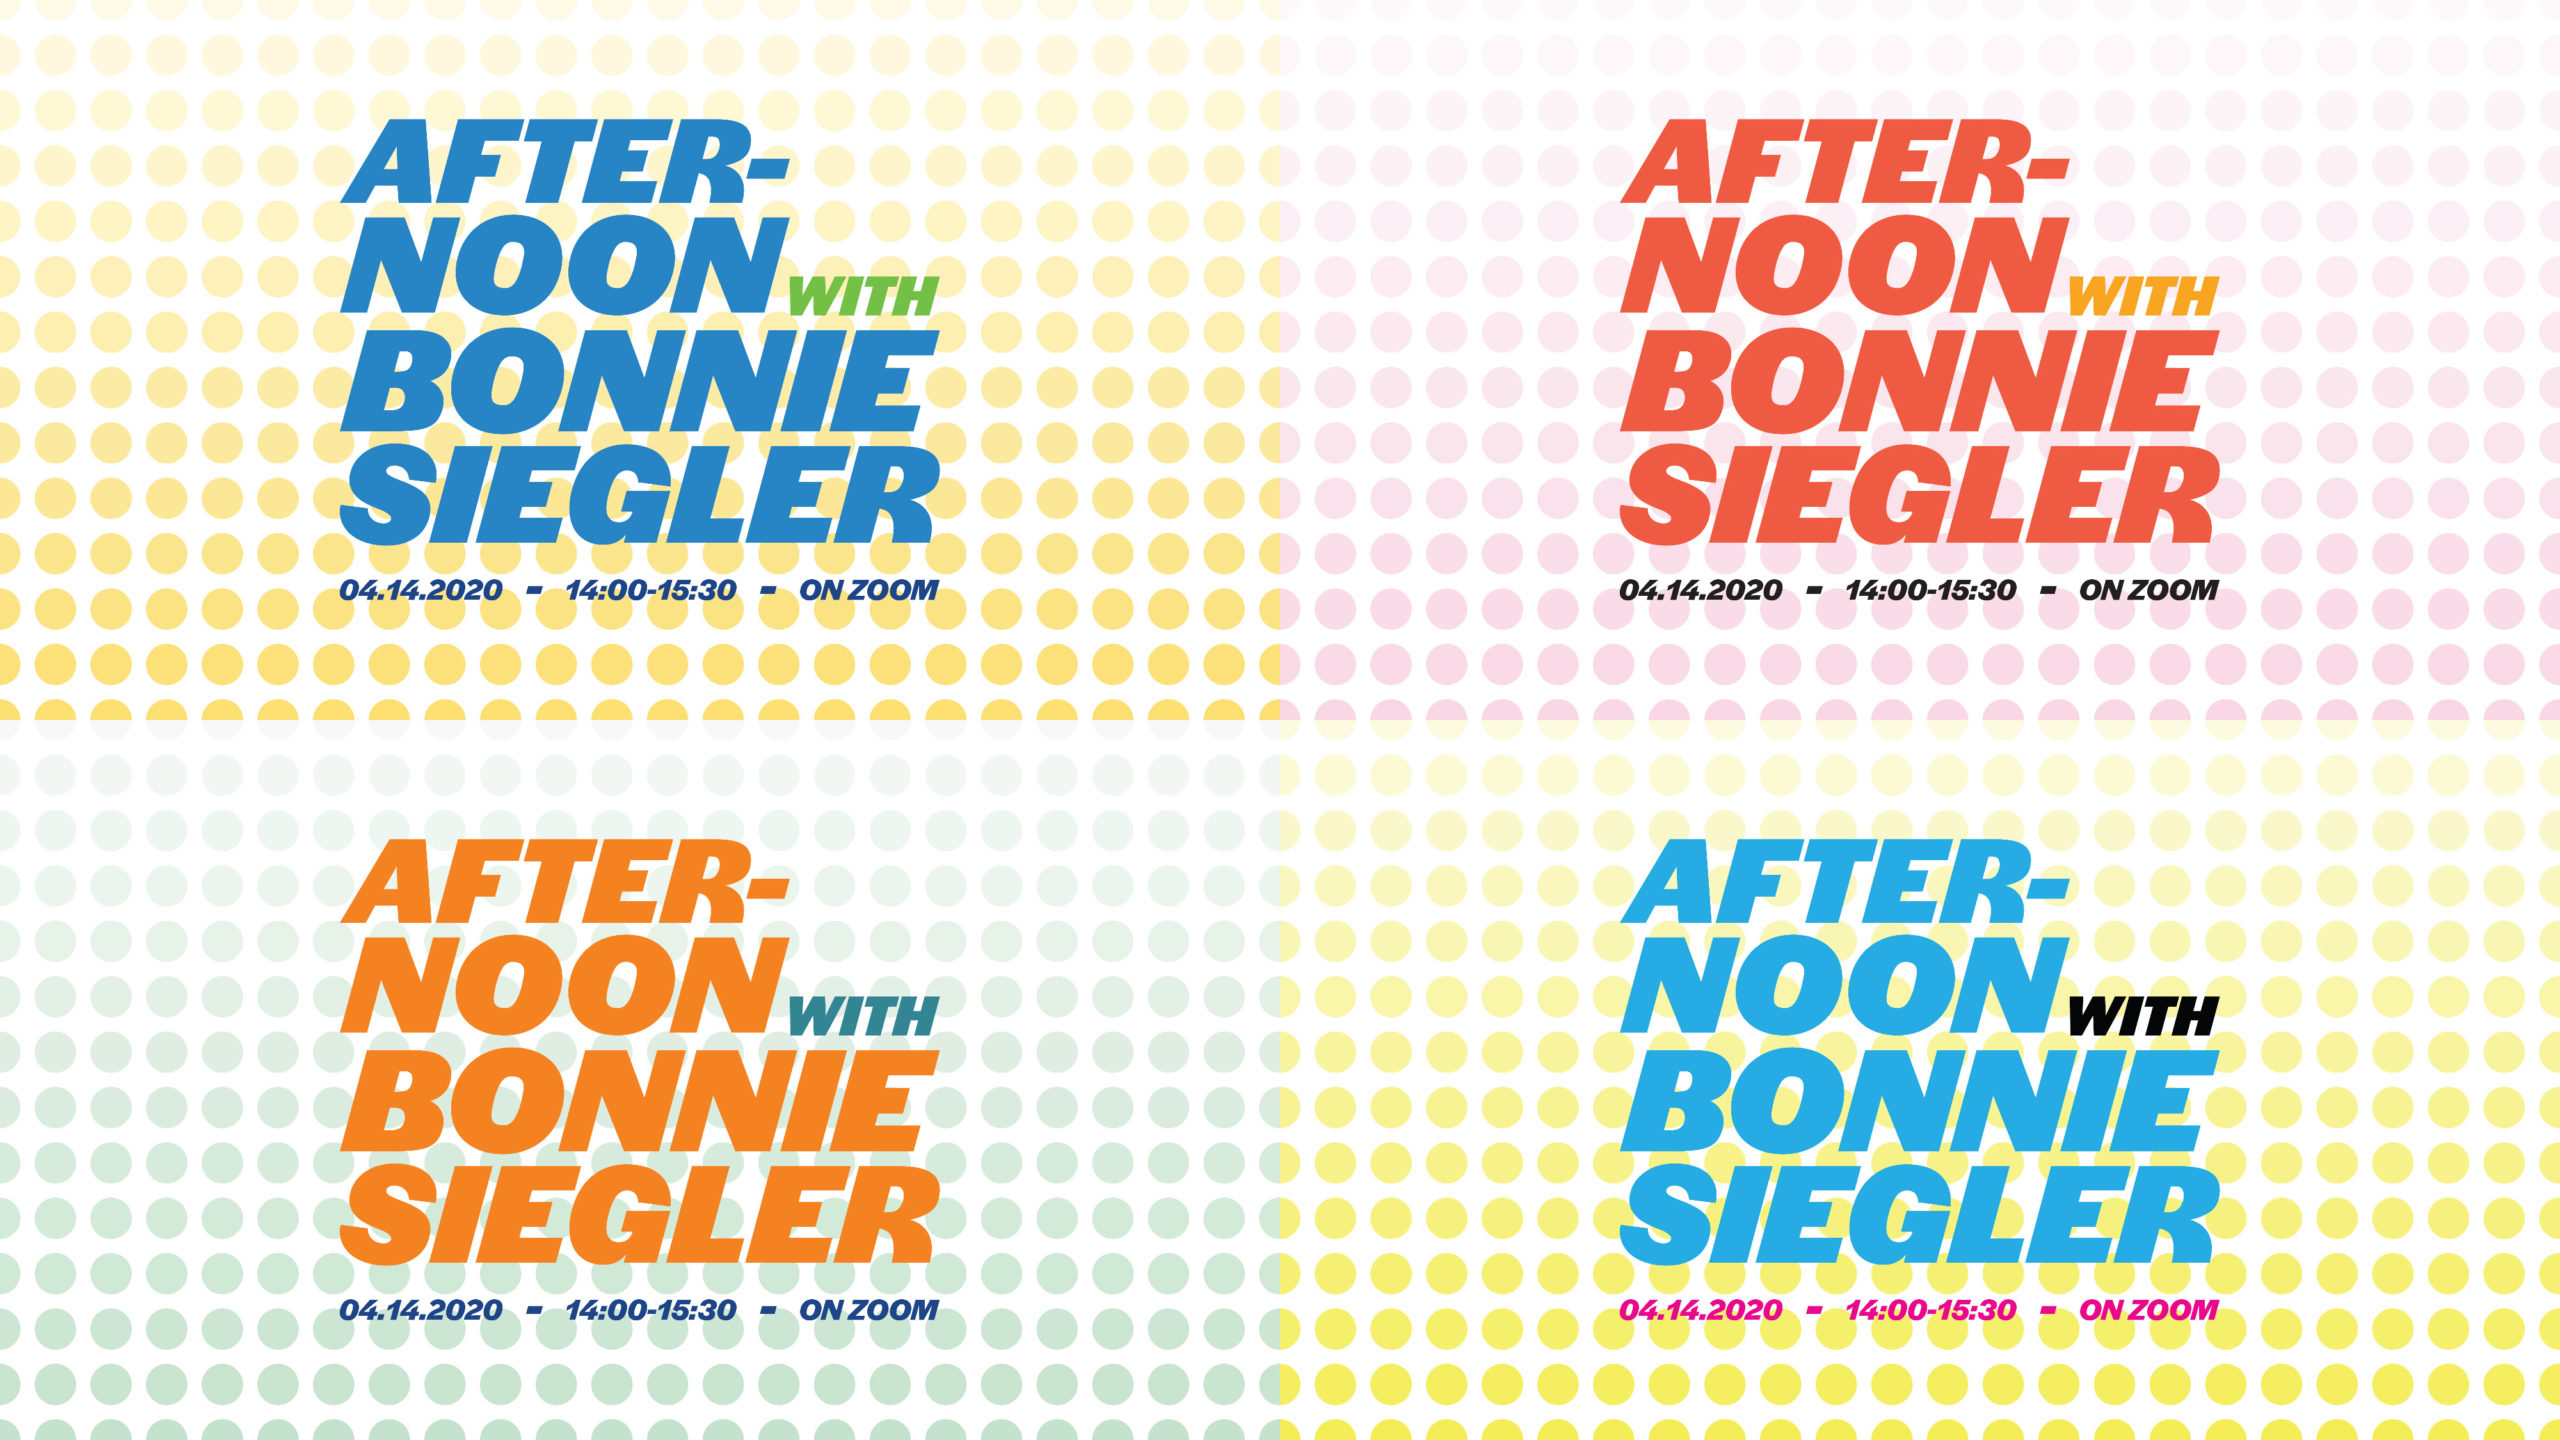 Afternoon with Bonnie Siegler; lecture artwork